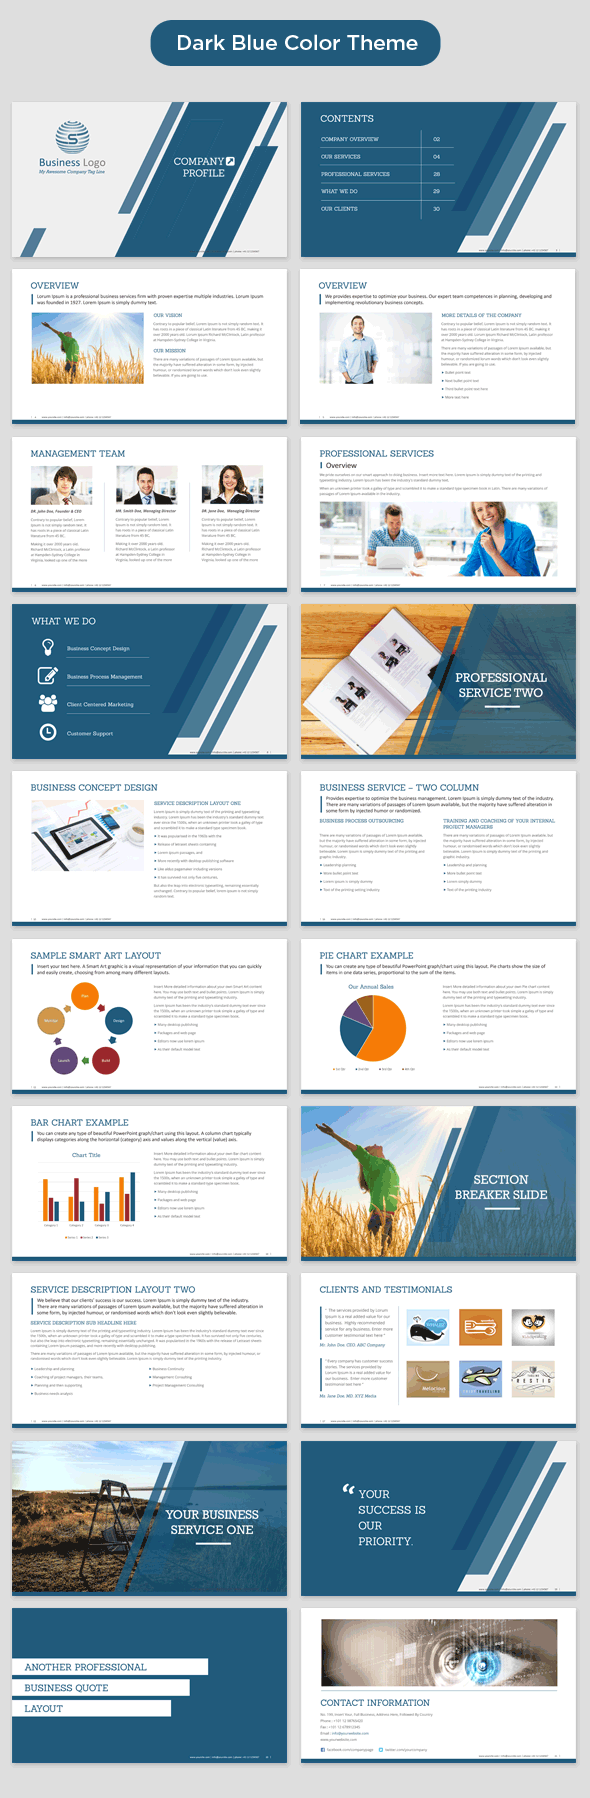 Company profile powerpoint template dark blue preview ppt company profile powerpoint template dark blue preview accmission